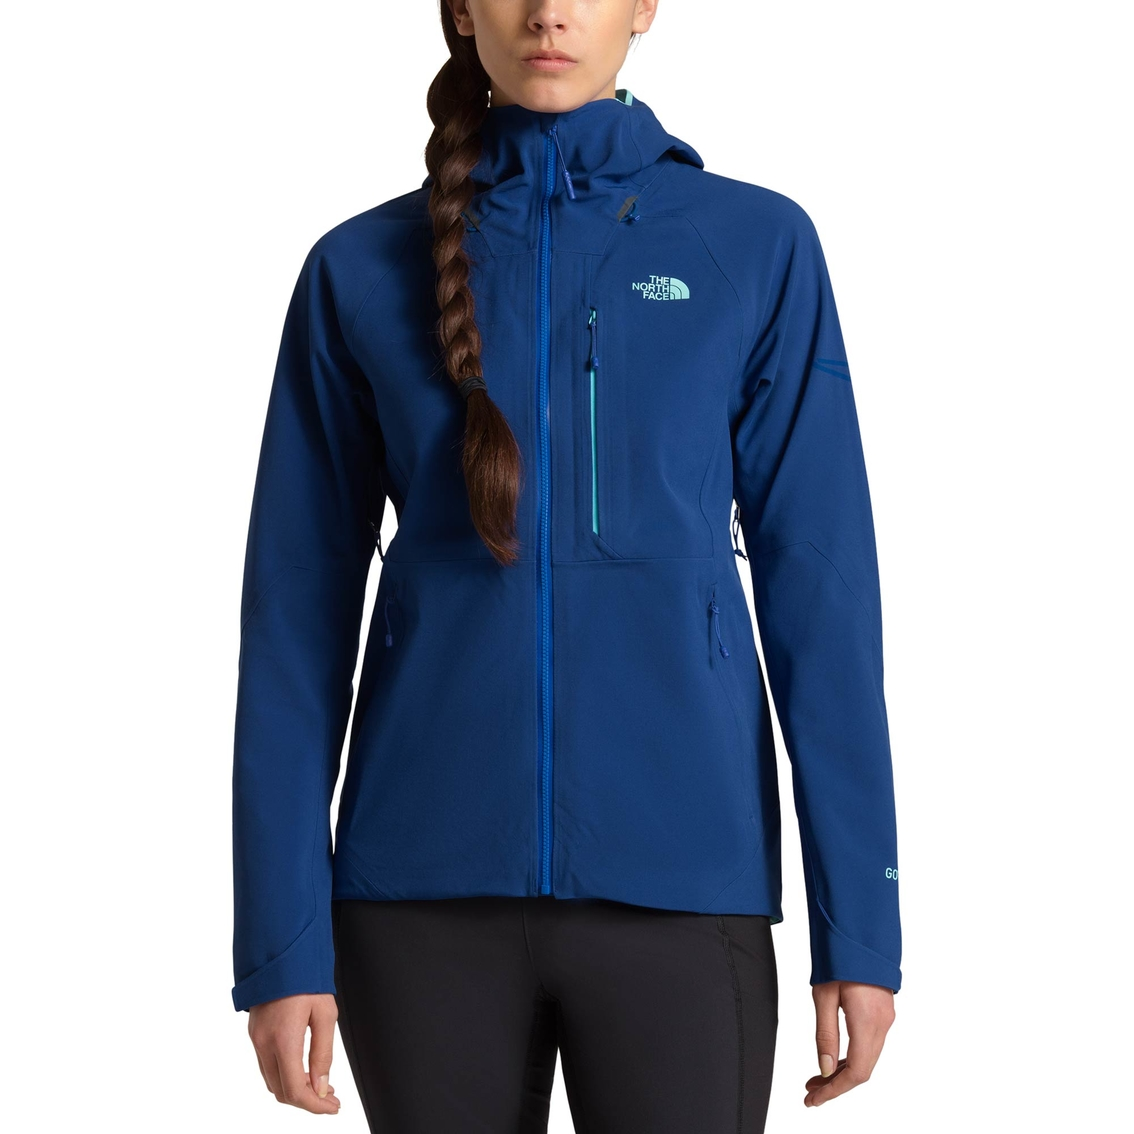 The North Face Apex Flex Gtx 20 Jacket Jackets Holiday Gift Jaket Army Gear Tactical Import Tad